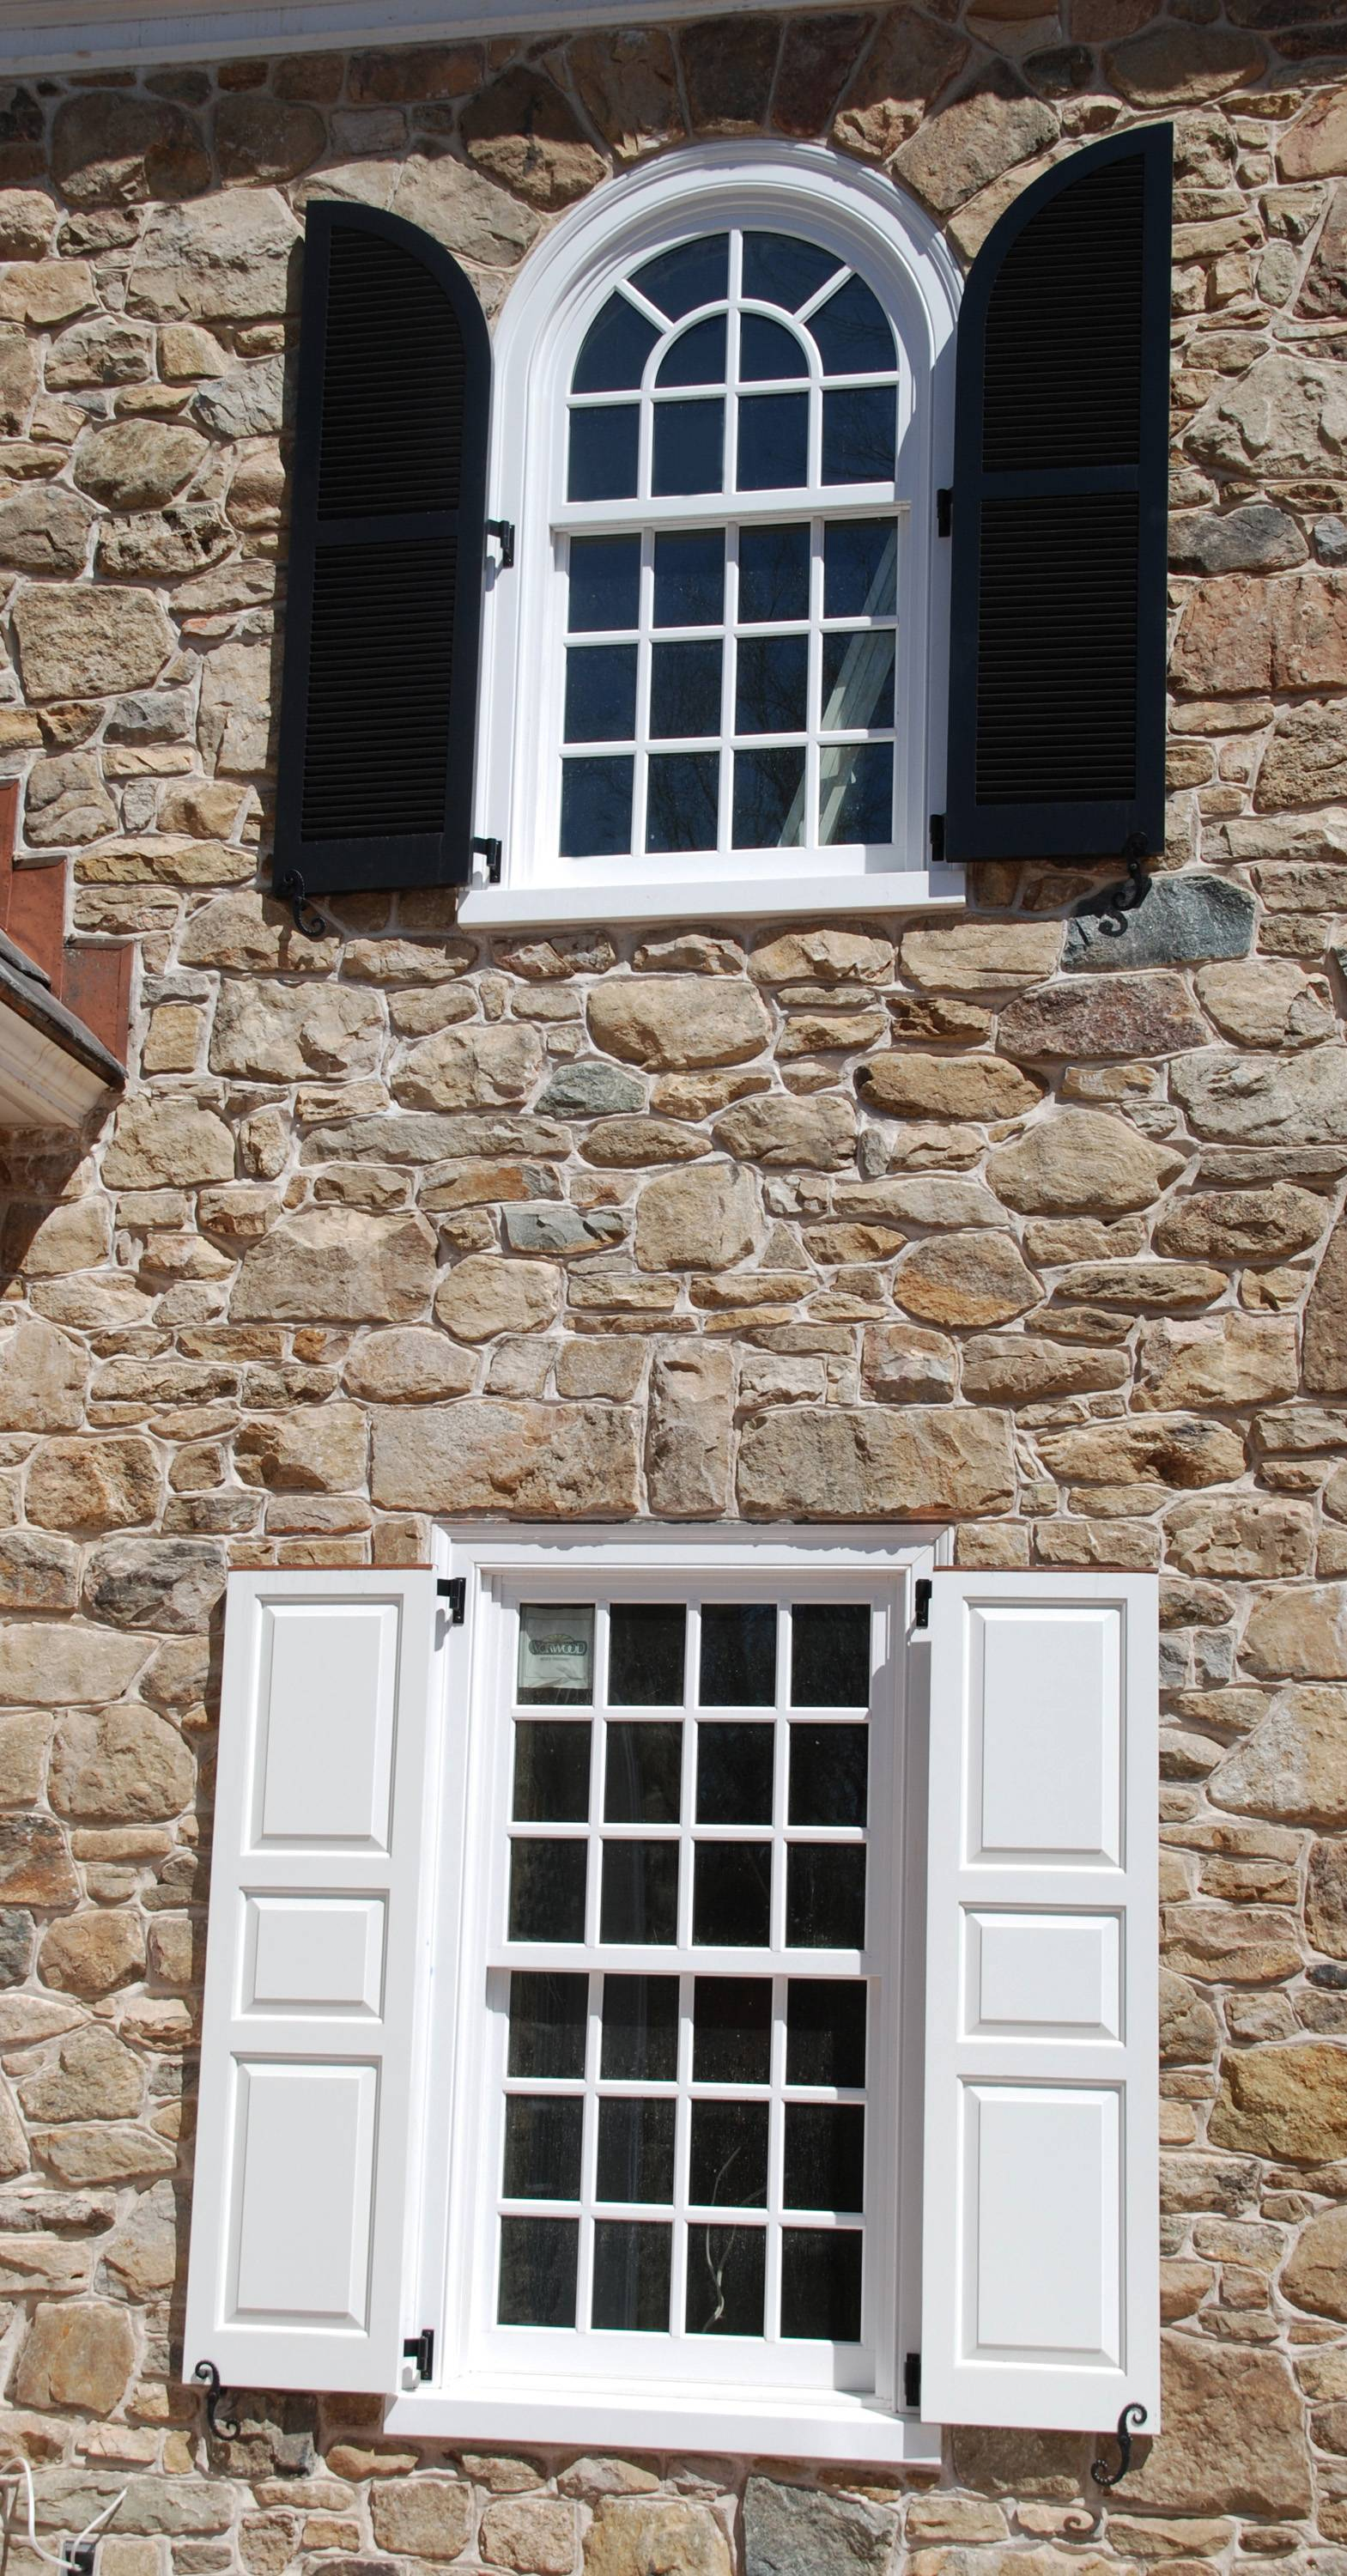 Homeowners often choose the wrong shape of shutters for arched windows. The shutters must be the right shape and size so that they will meet in the middle of the window and completely cover the opening.